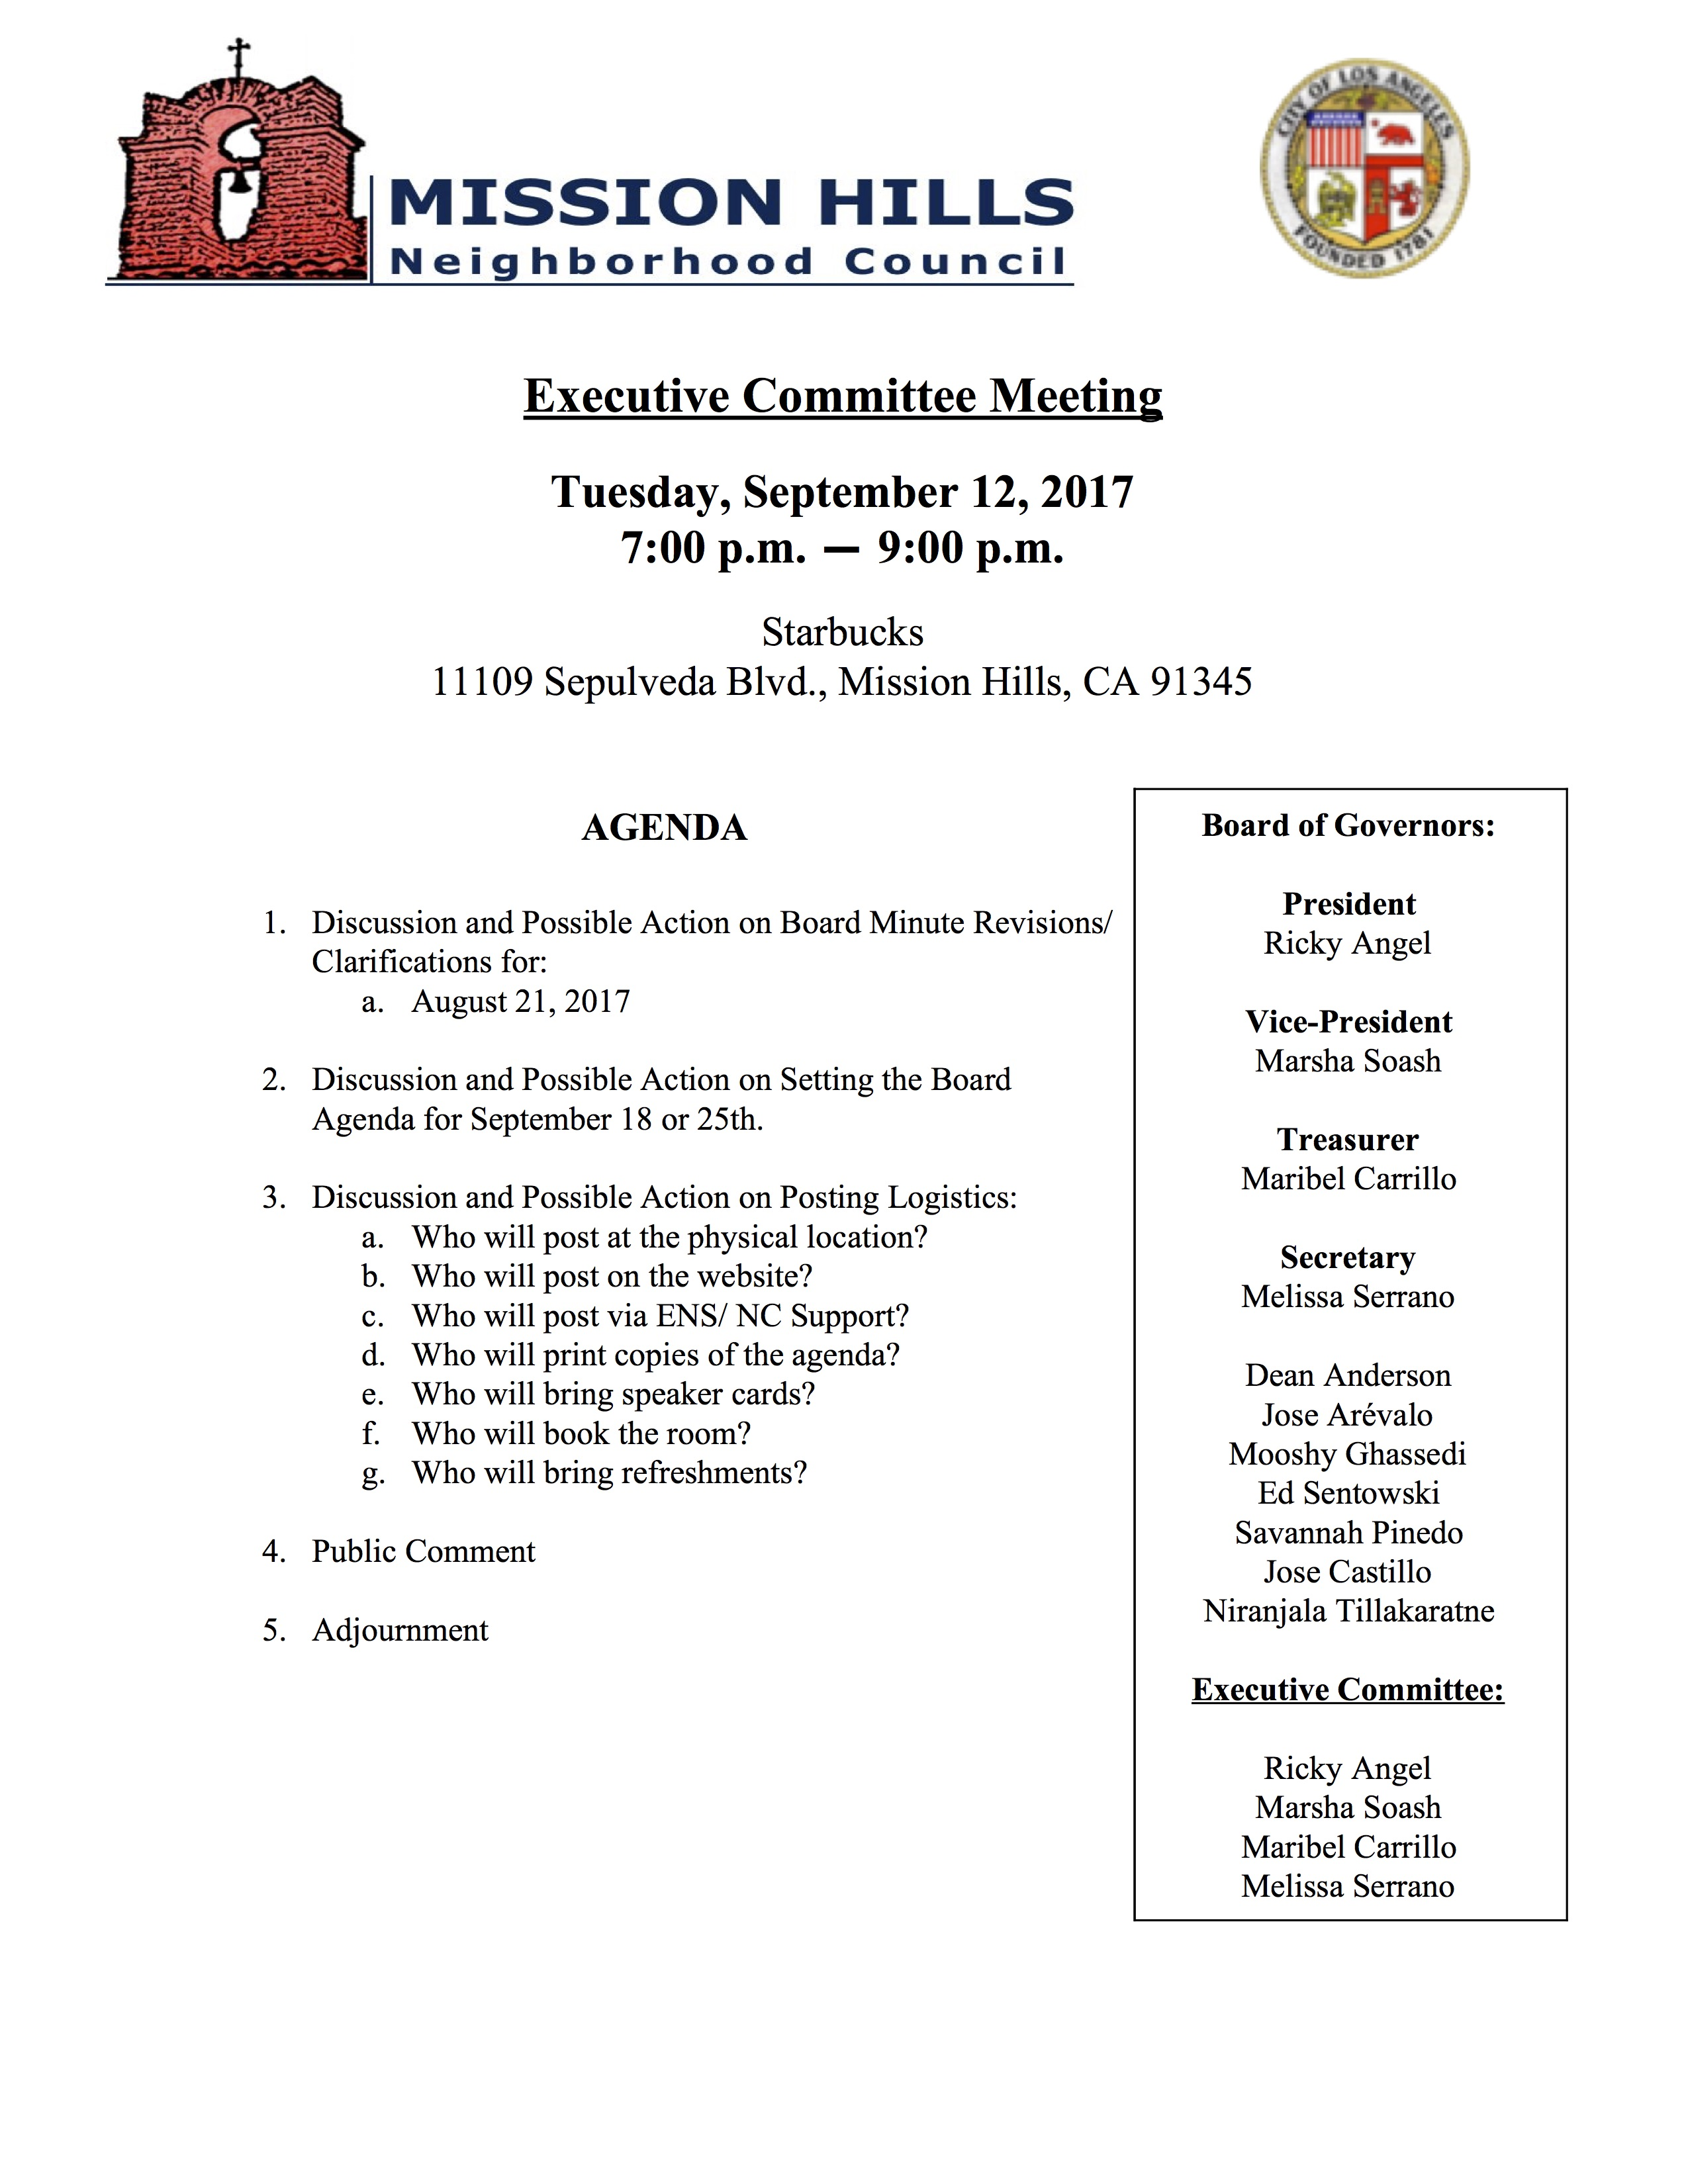 Executive Committee Agenda September 12, 2017